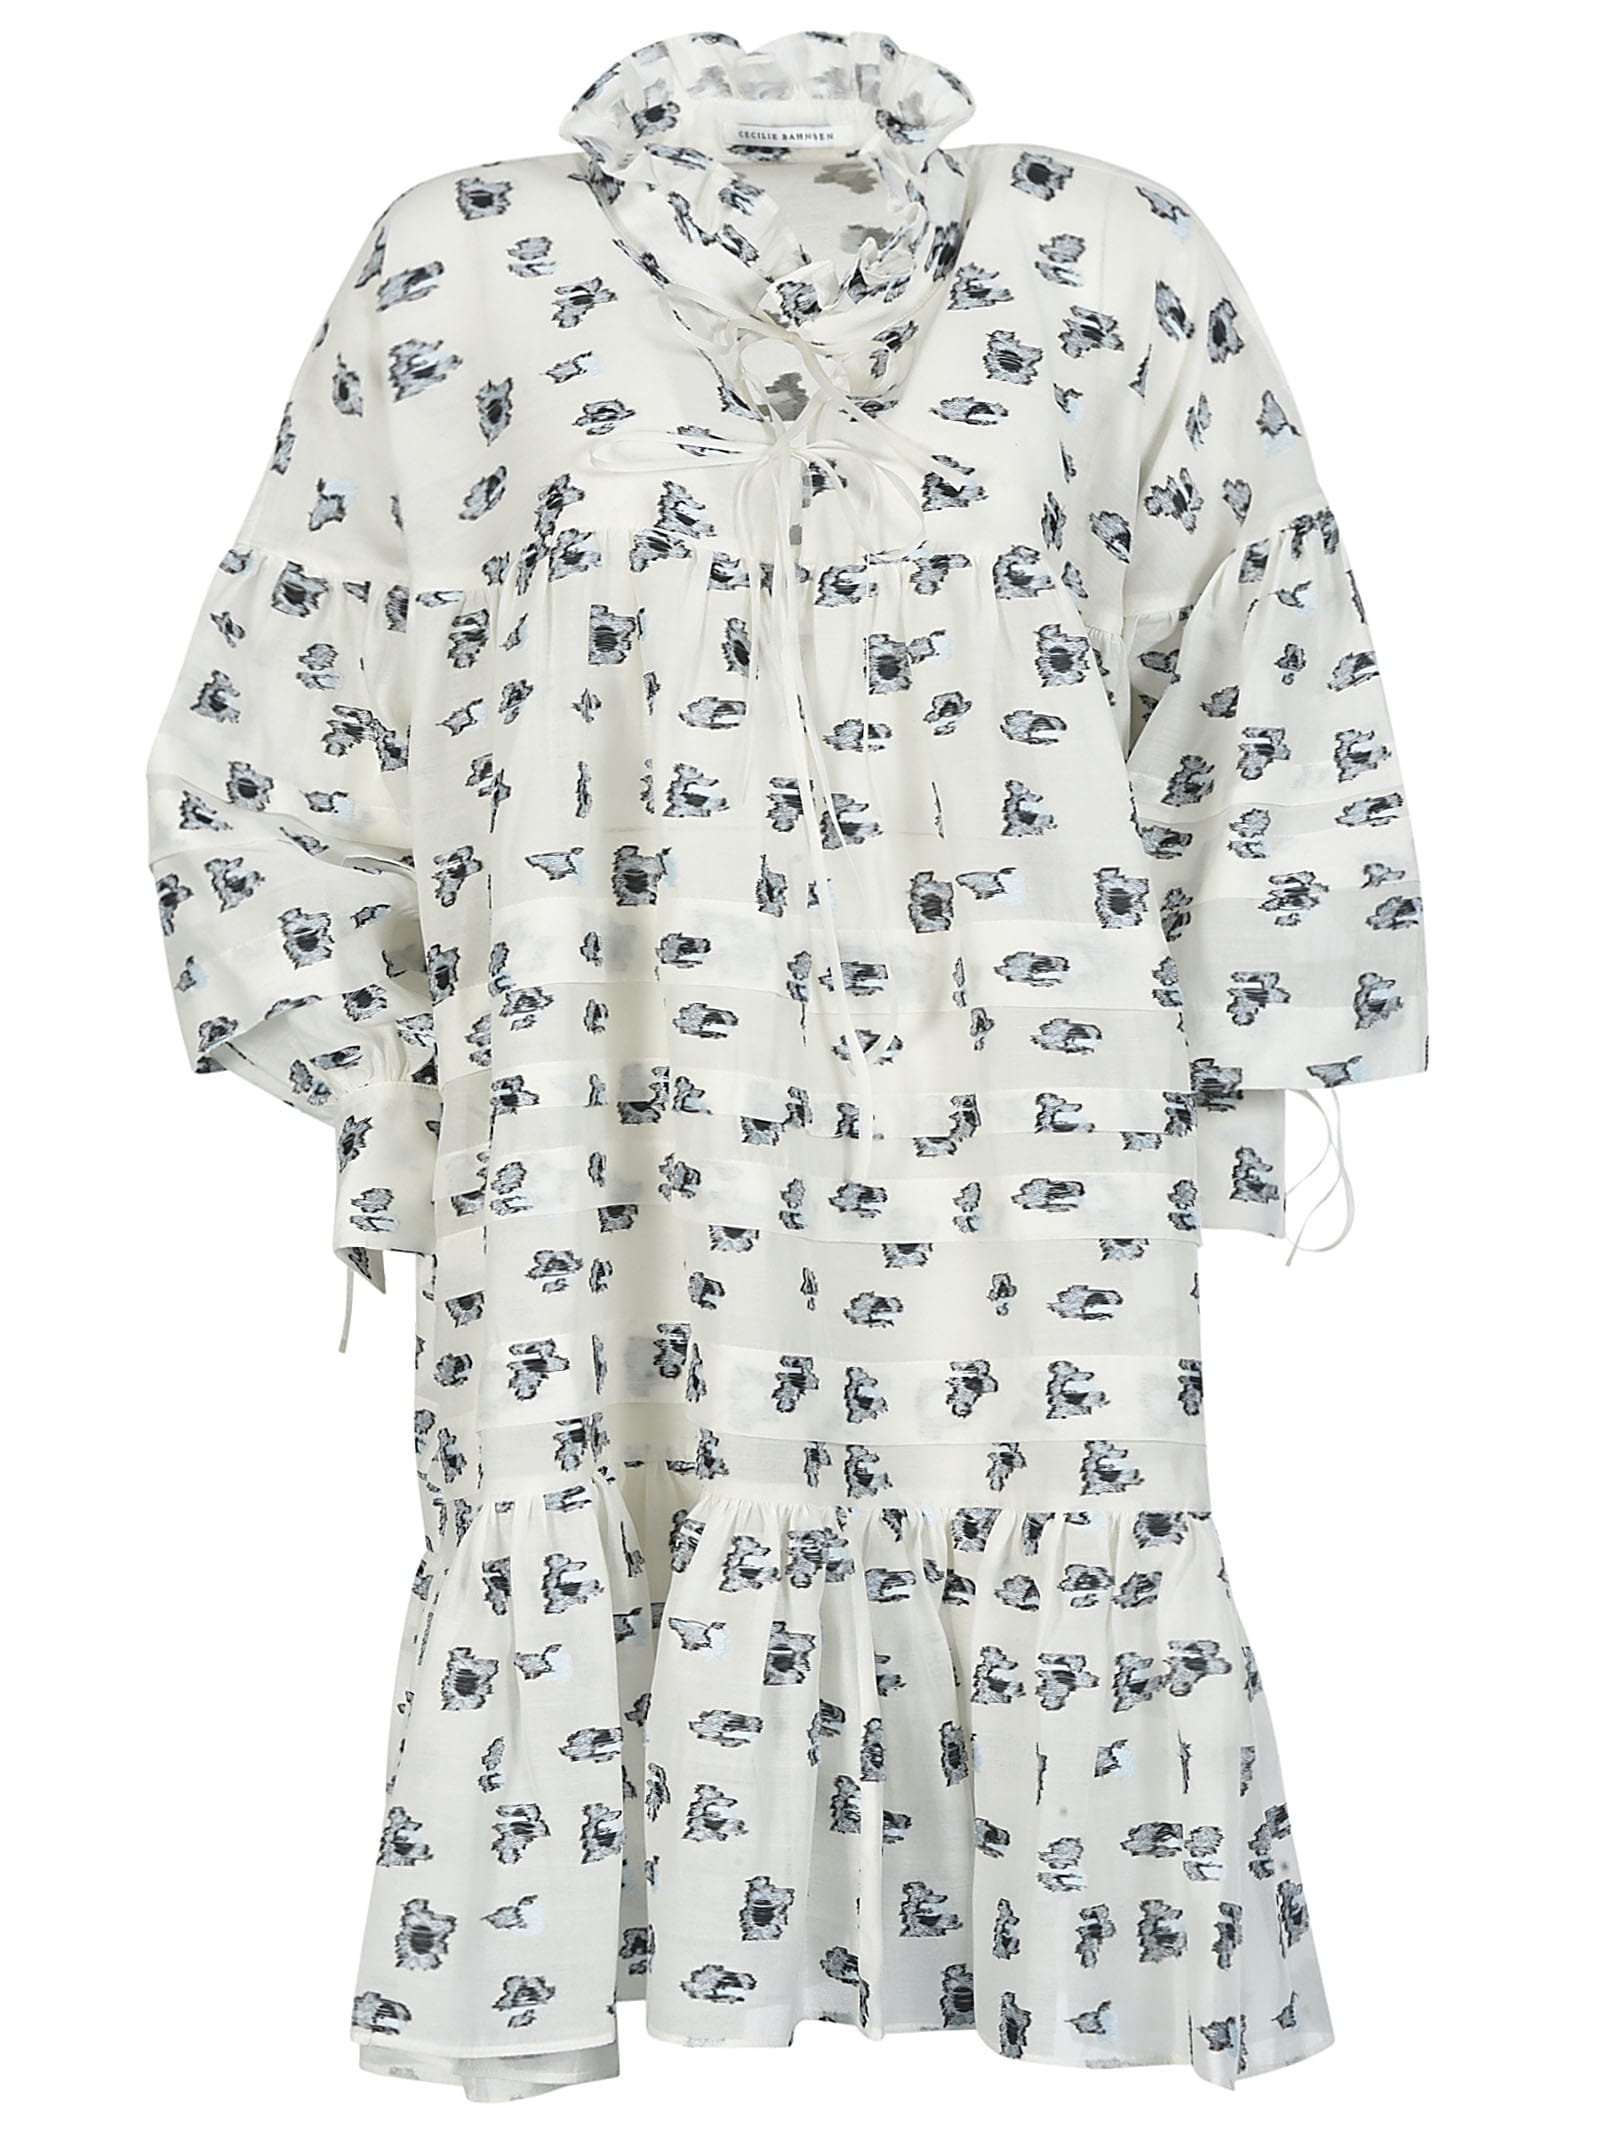 Buy Cecilie Bahnsen Motif Print Oversized Dress online, shop Cecilie Bahnsen with free shipping